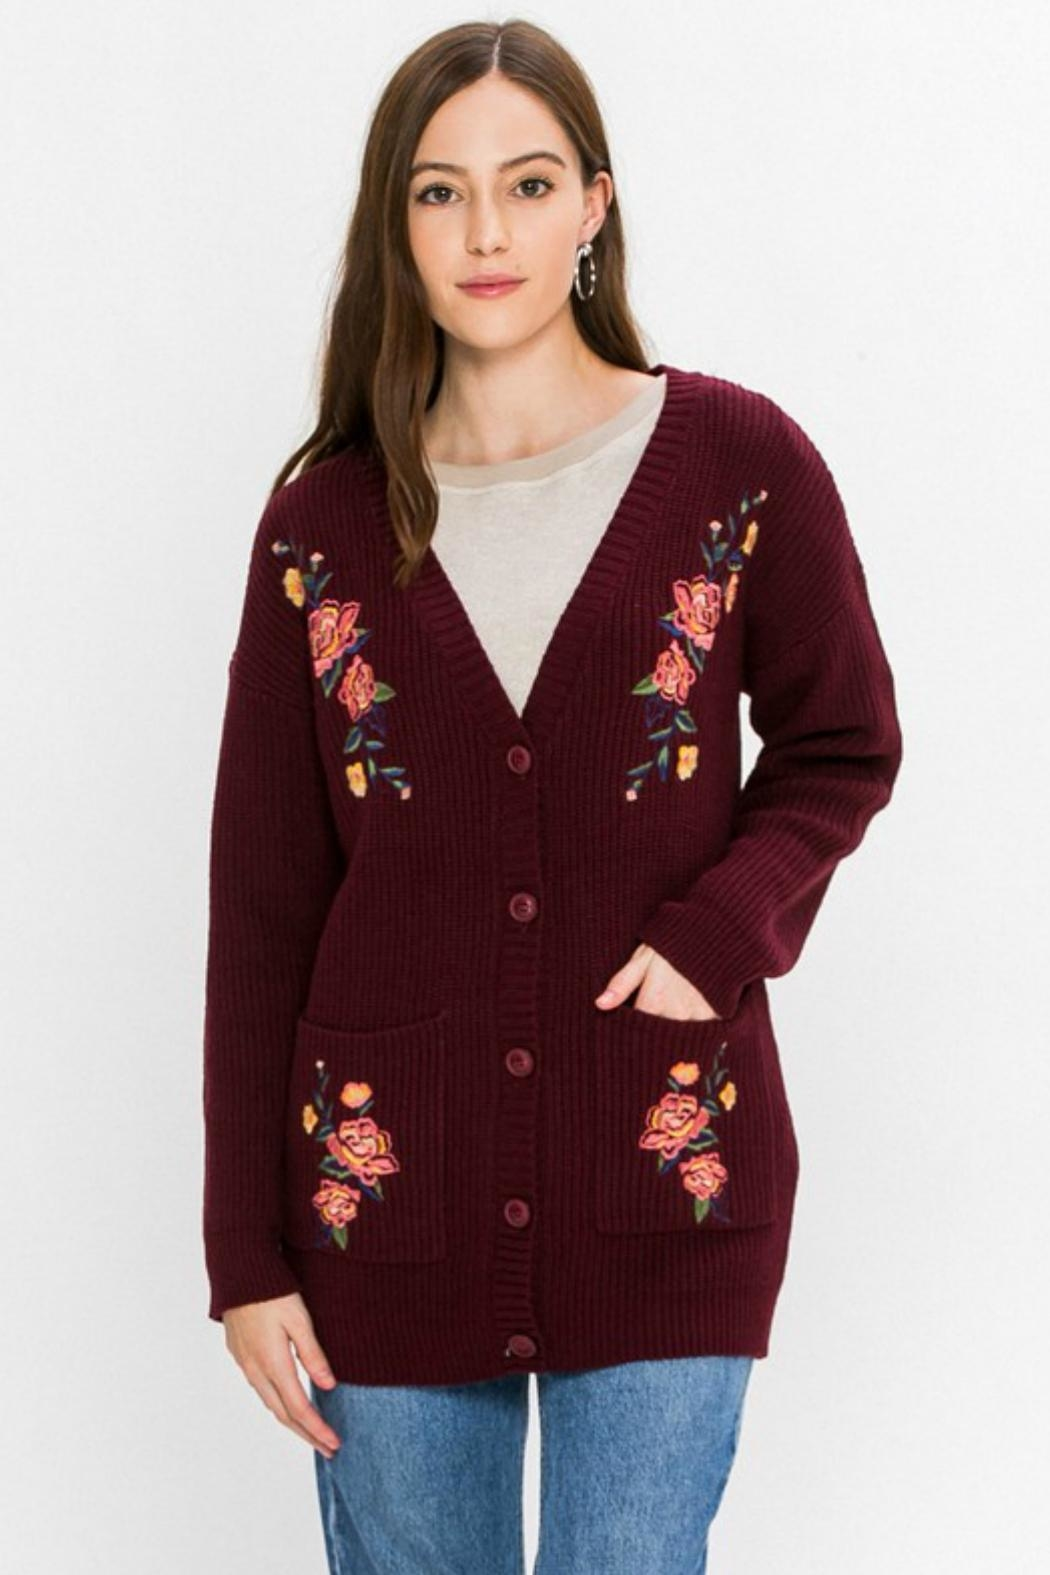 Flying Tomato Floral-Emroidered Knit Cardigan - Main Image